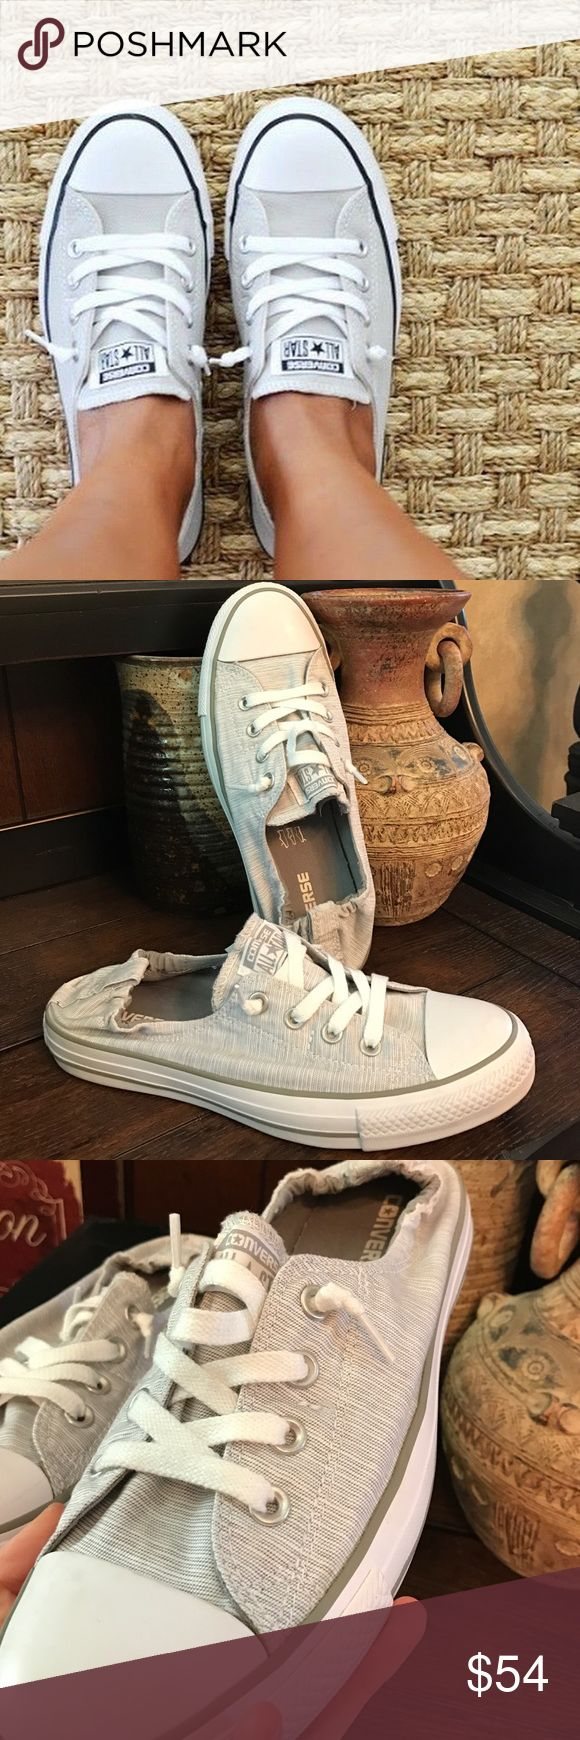 CONVERSE Shoreline Dolphin White Slip on Size 10 With box. Ordered online  worn once. Need different size. Converse Shoes Sneakers